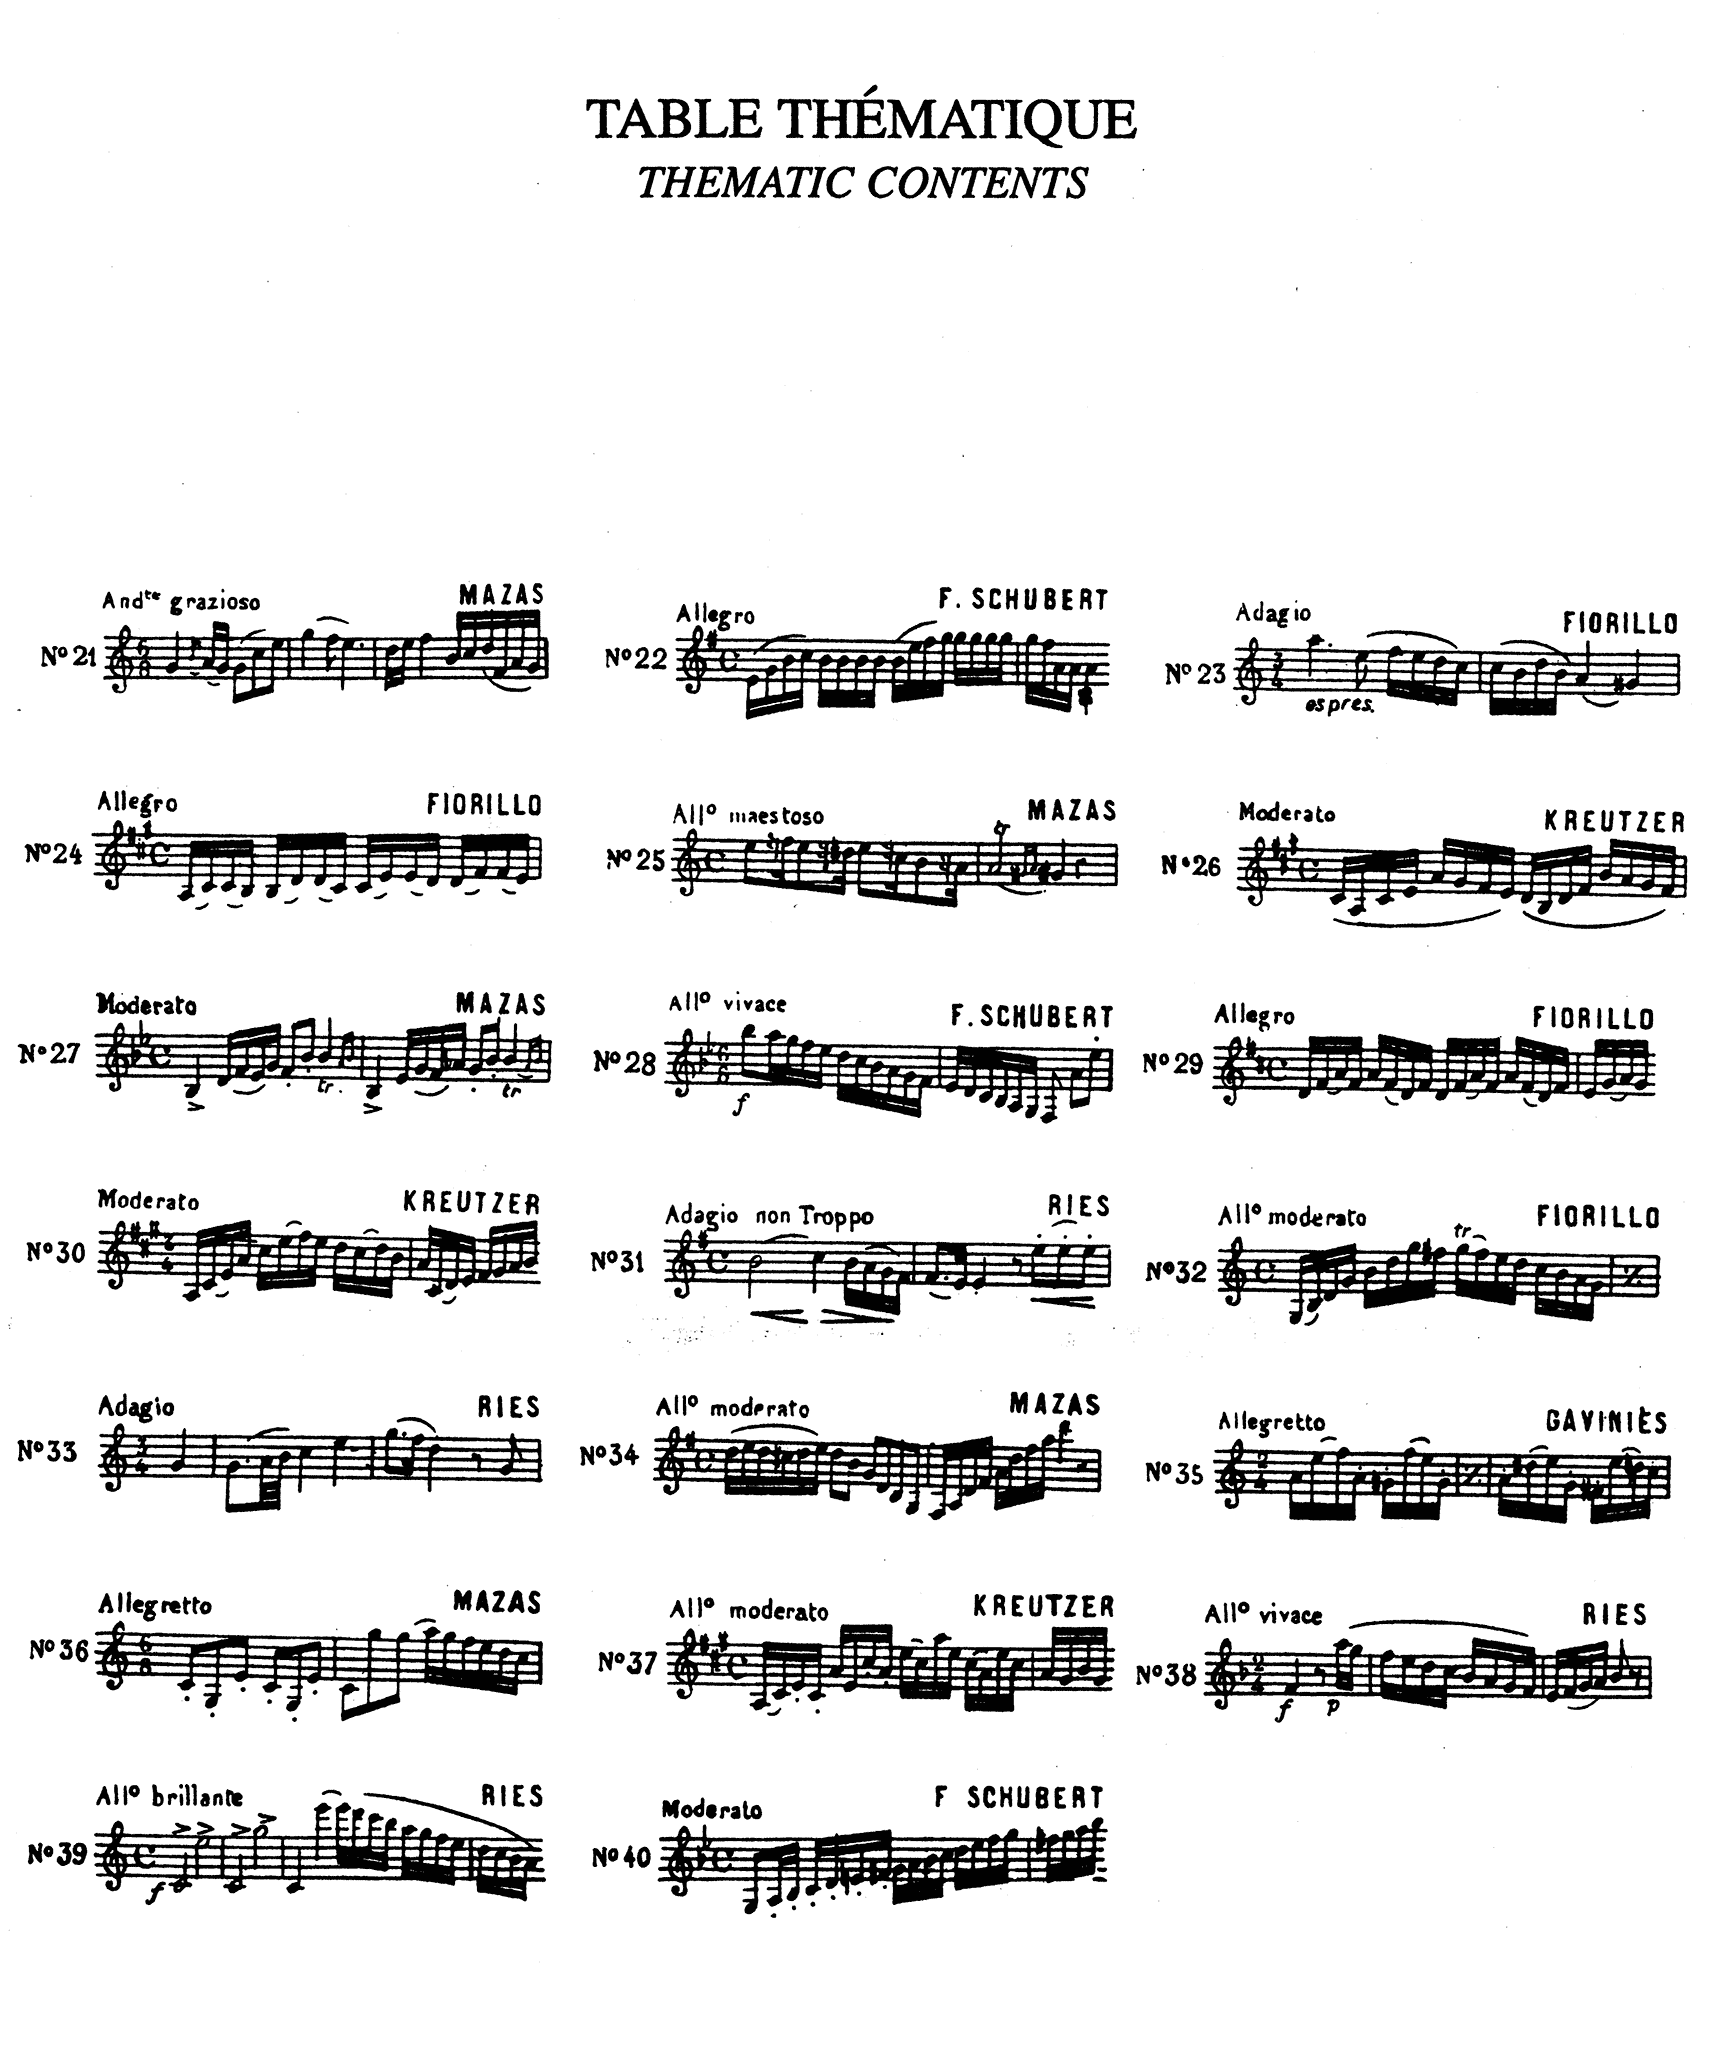 40 Etudes for Clarinet, Book 2 of 2 Thematic index